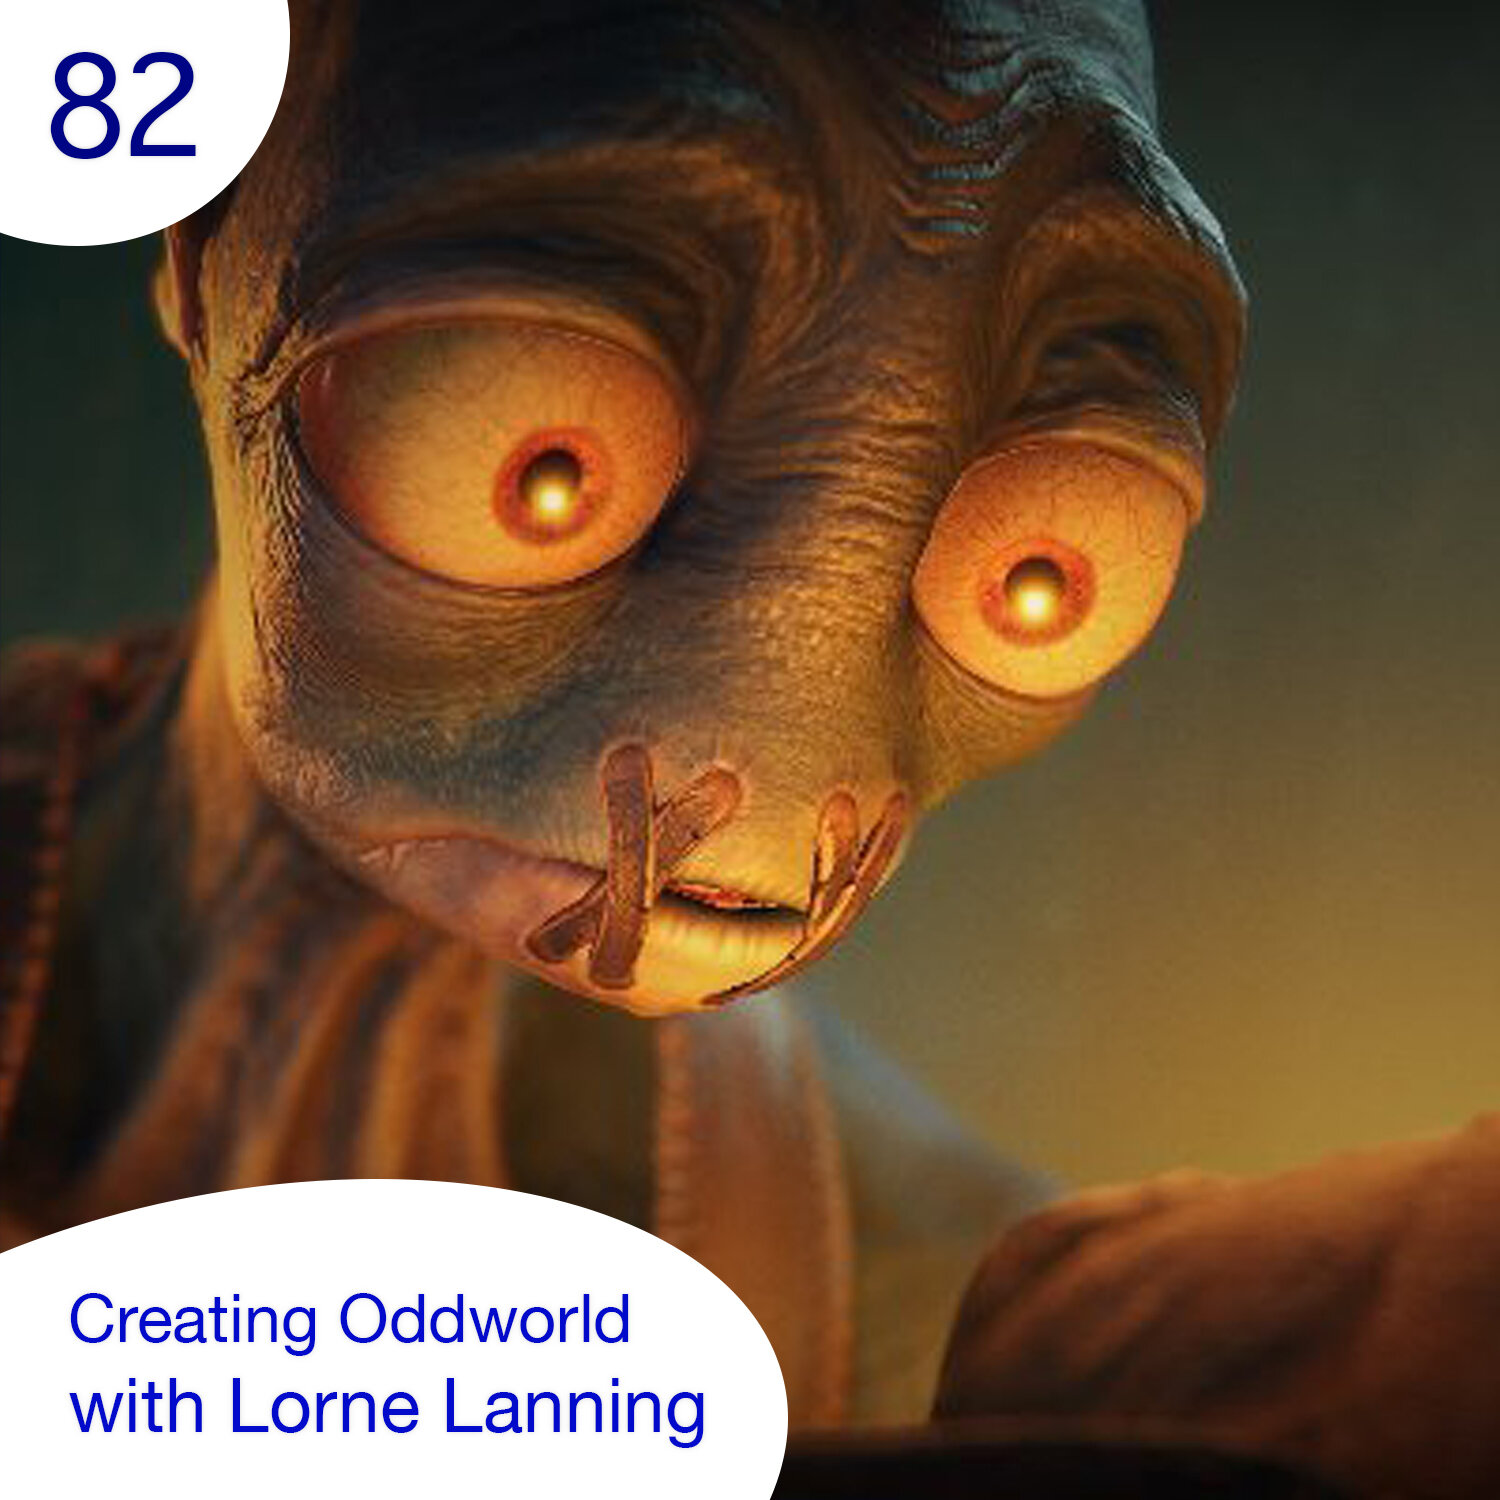 Creating Worlds for Meaningful Storytelling - with Lorne Lanning (Oddworld)